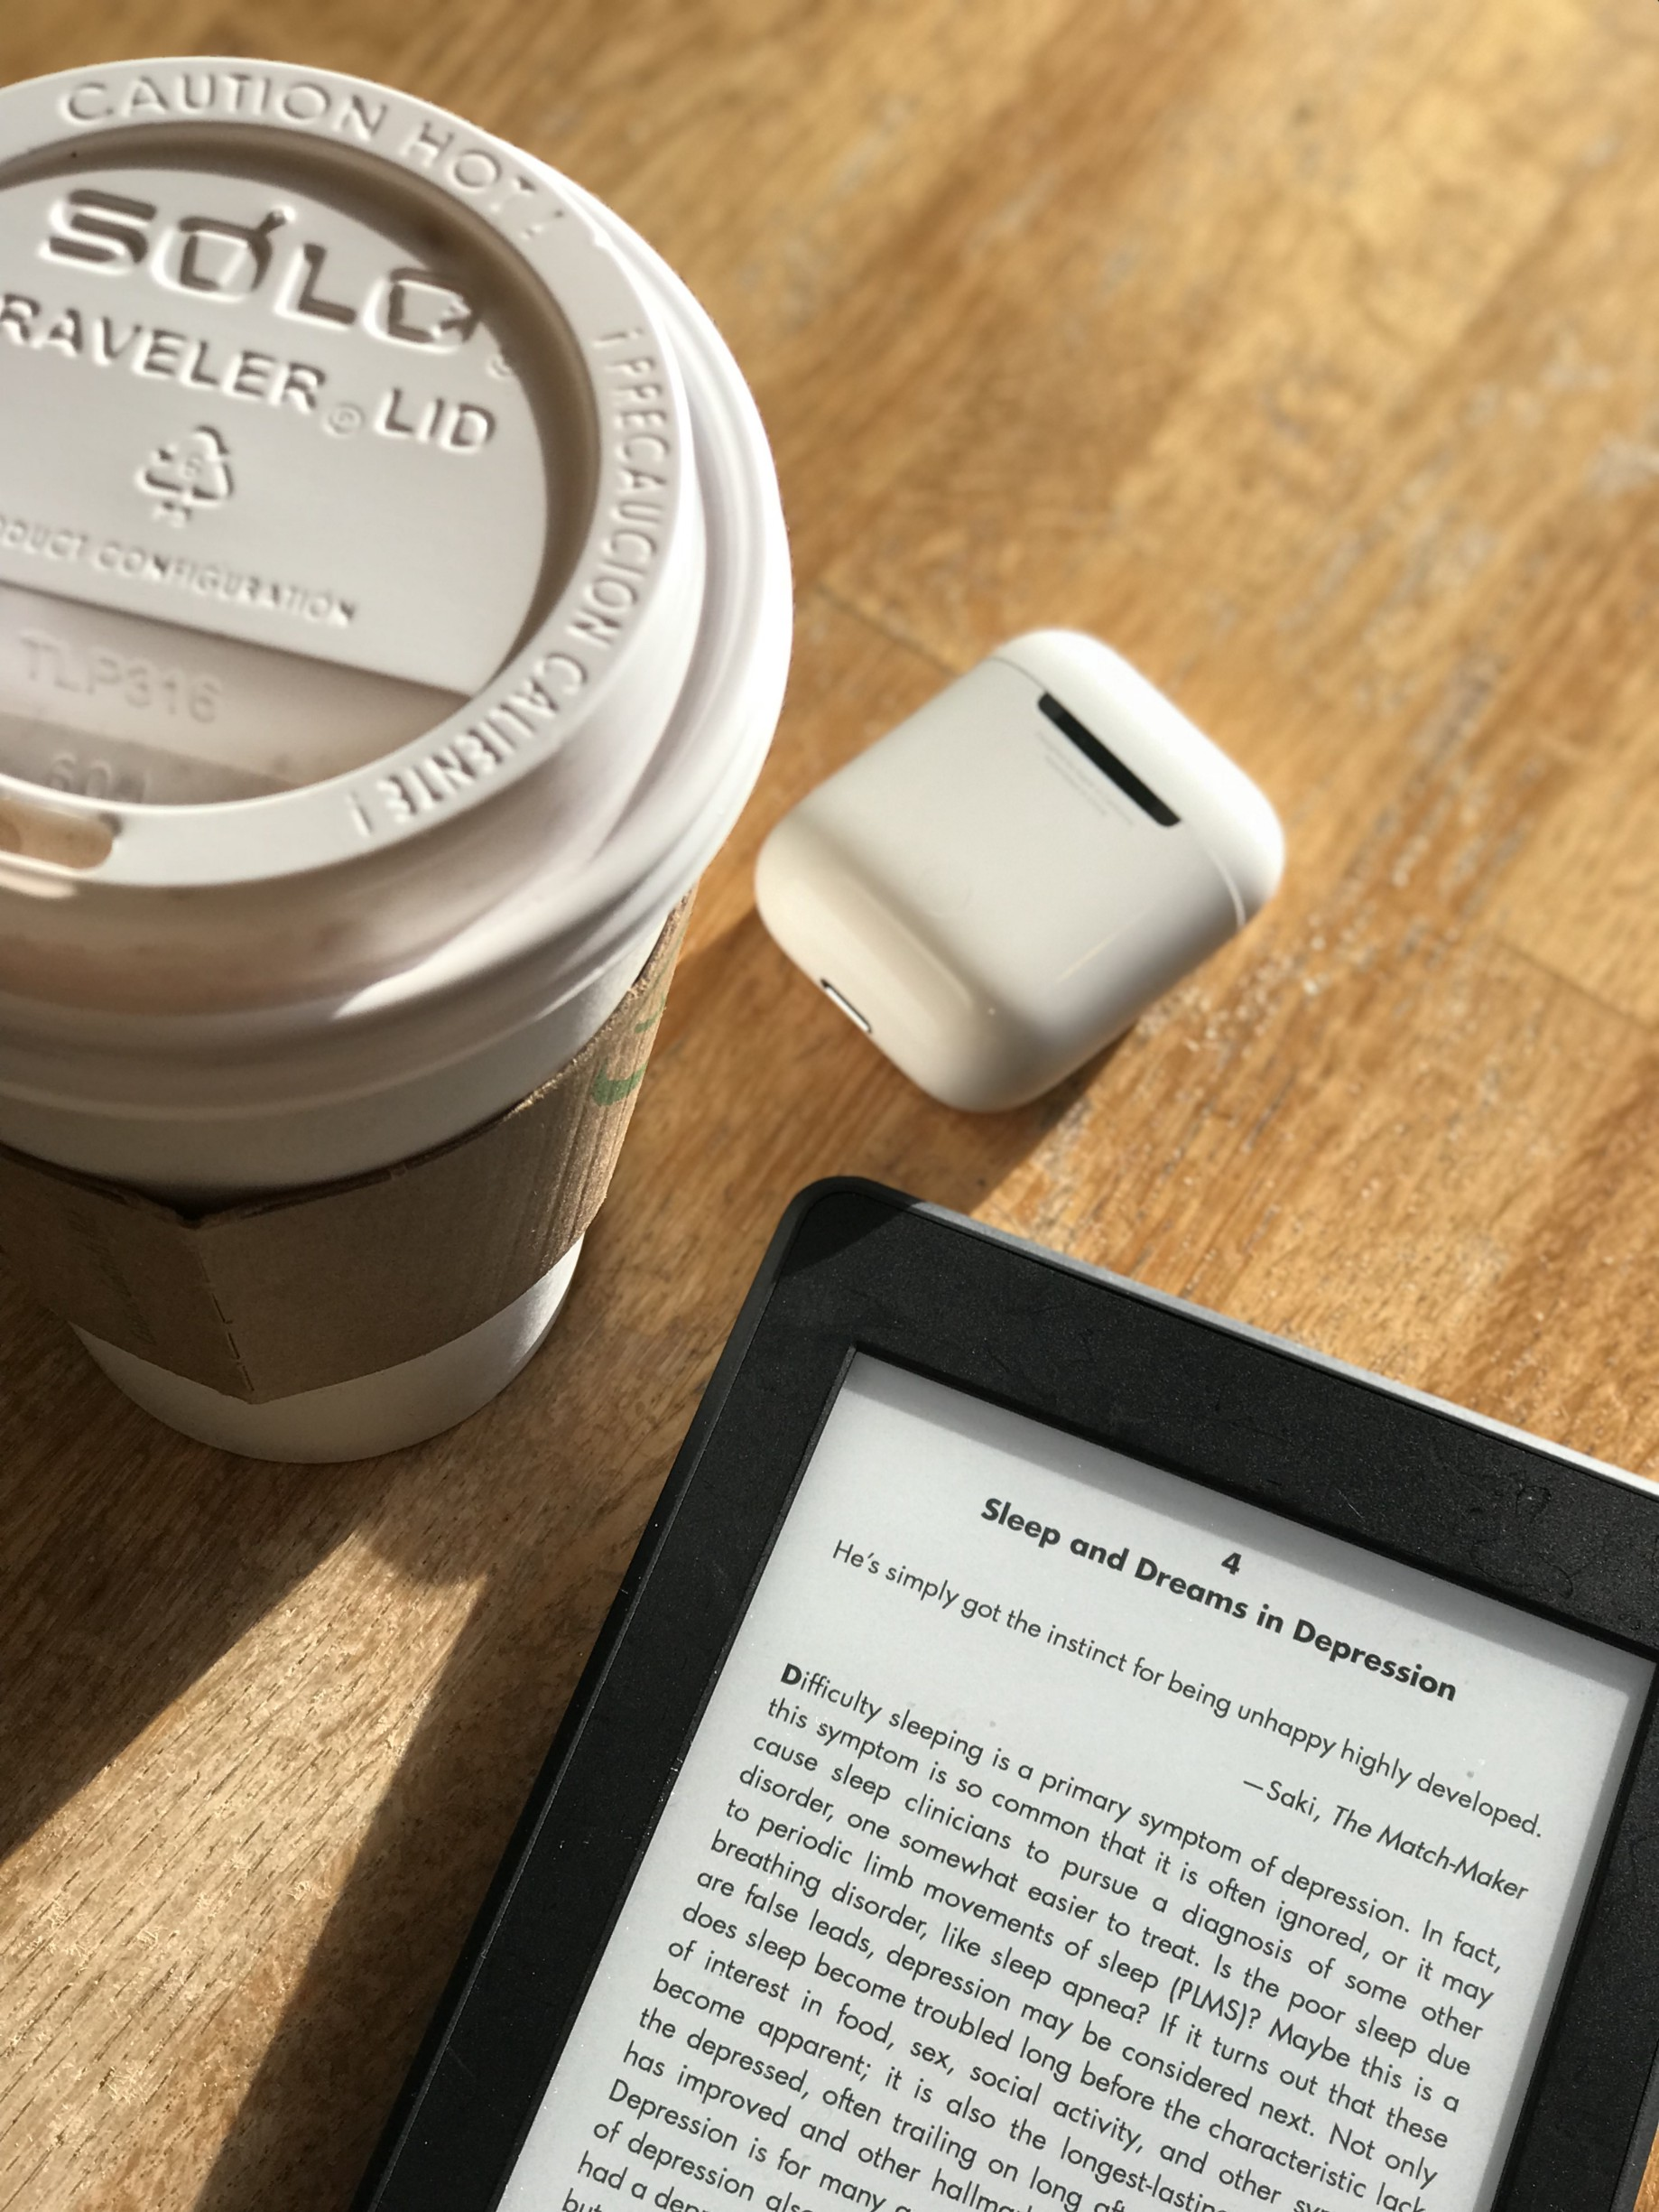 Influences of the Apple Watch: Considering A Cellular Kindle